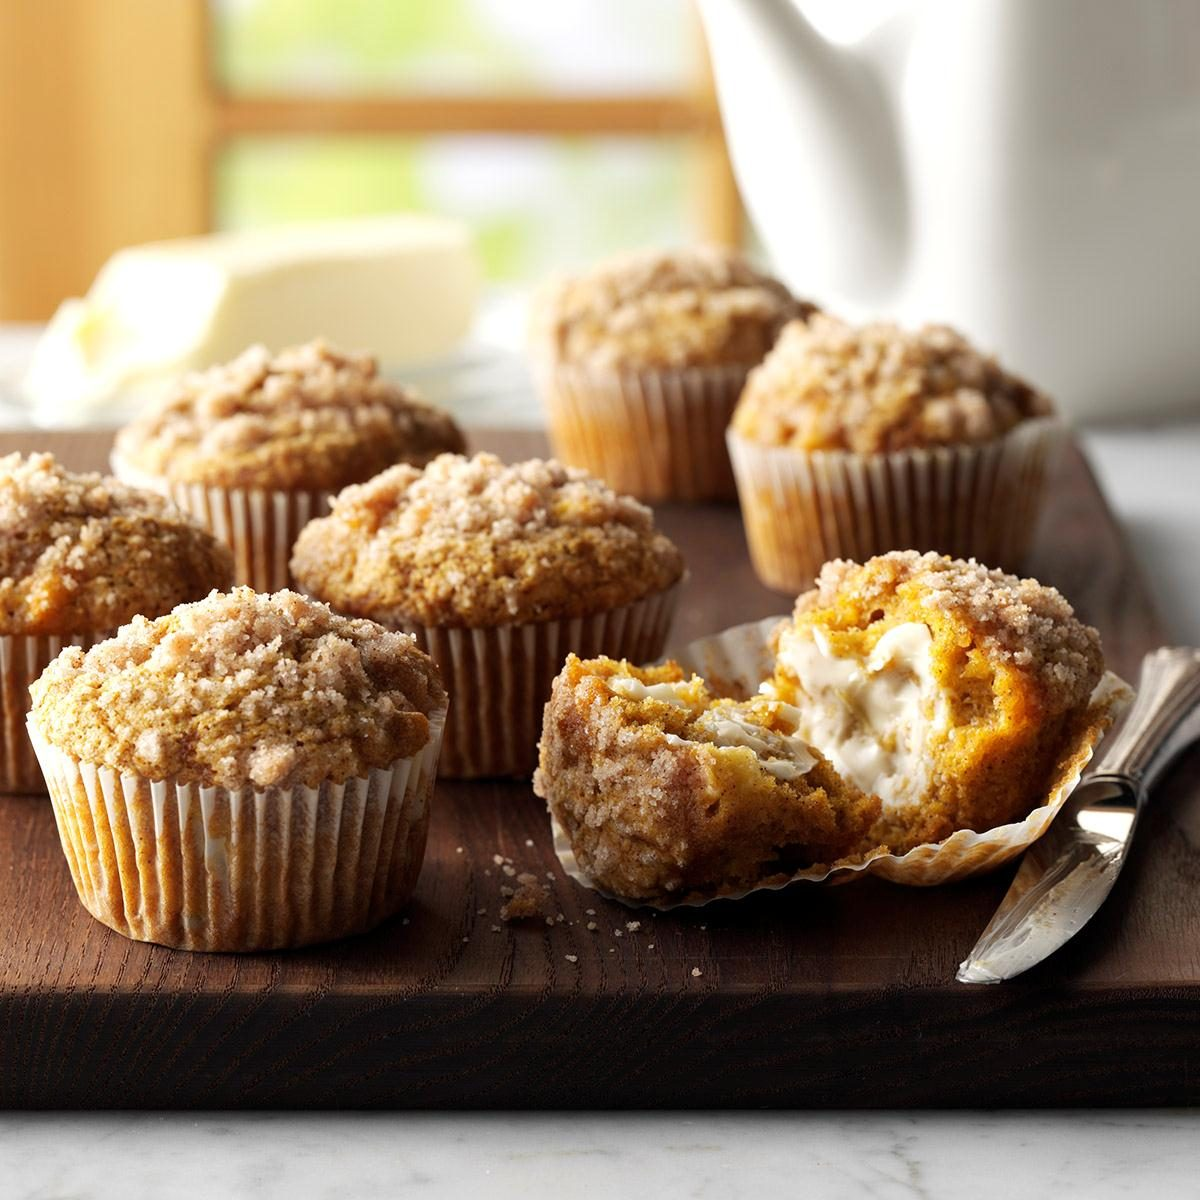 Pumpkin-Apple Muffins with Streusel Topping Recipe | Taste ...